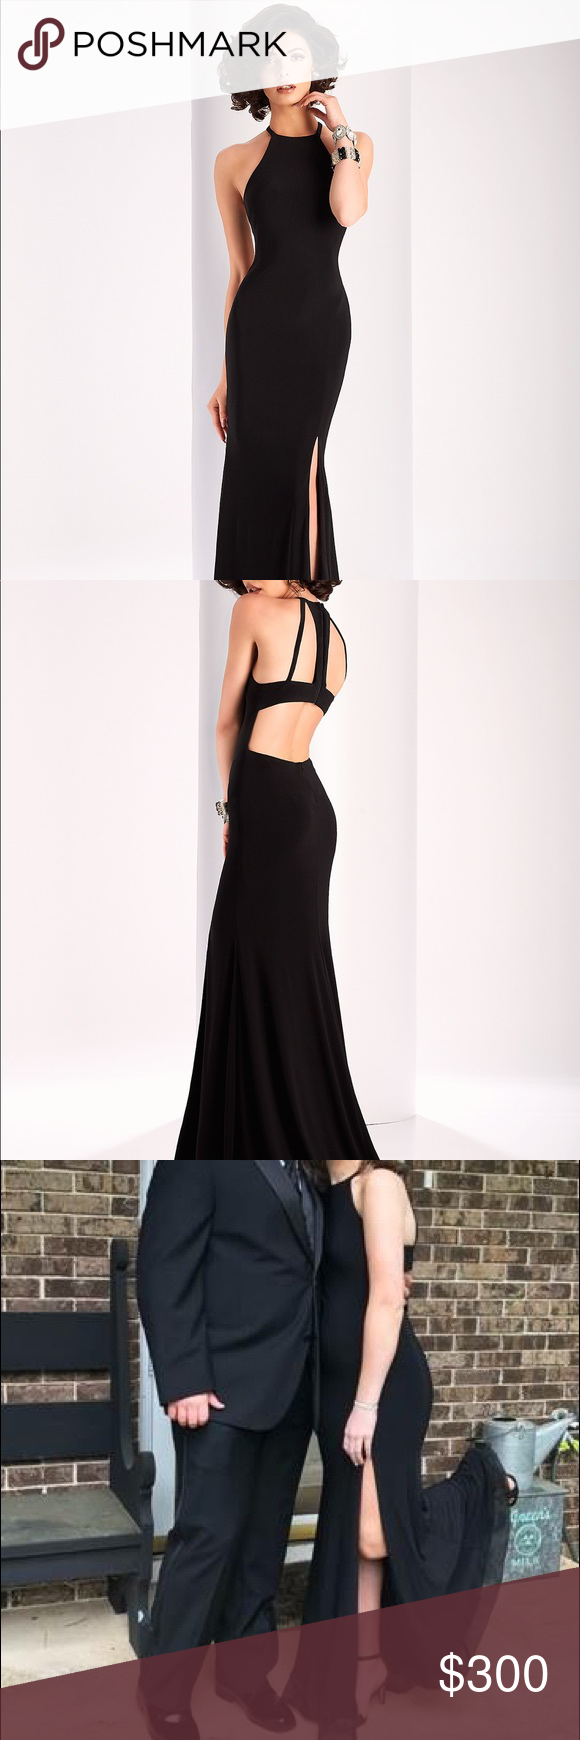 Black cut out homecoming dress homecoming homecoming dresses and